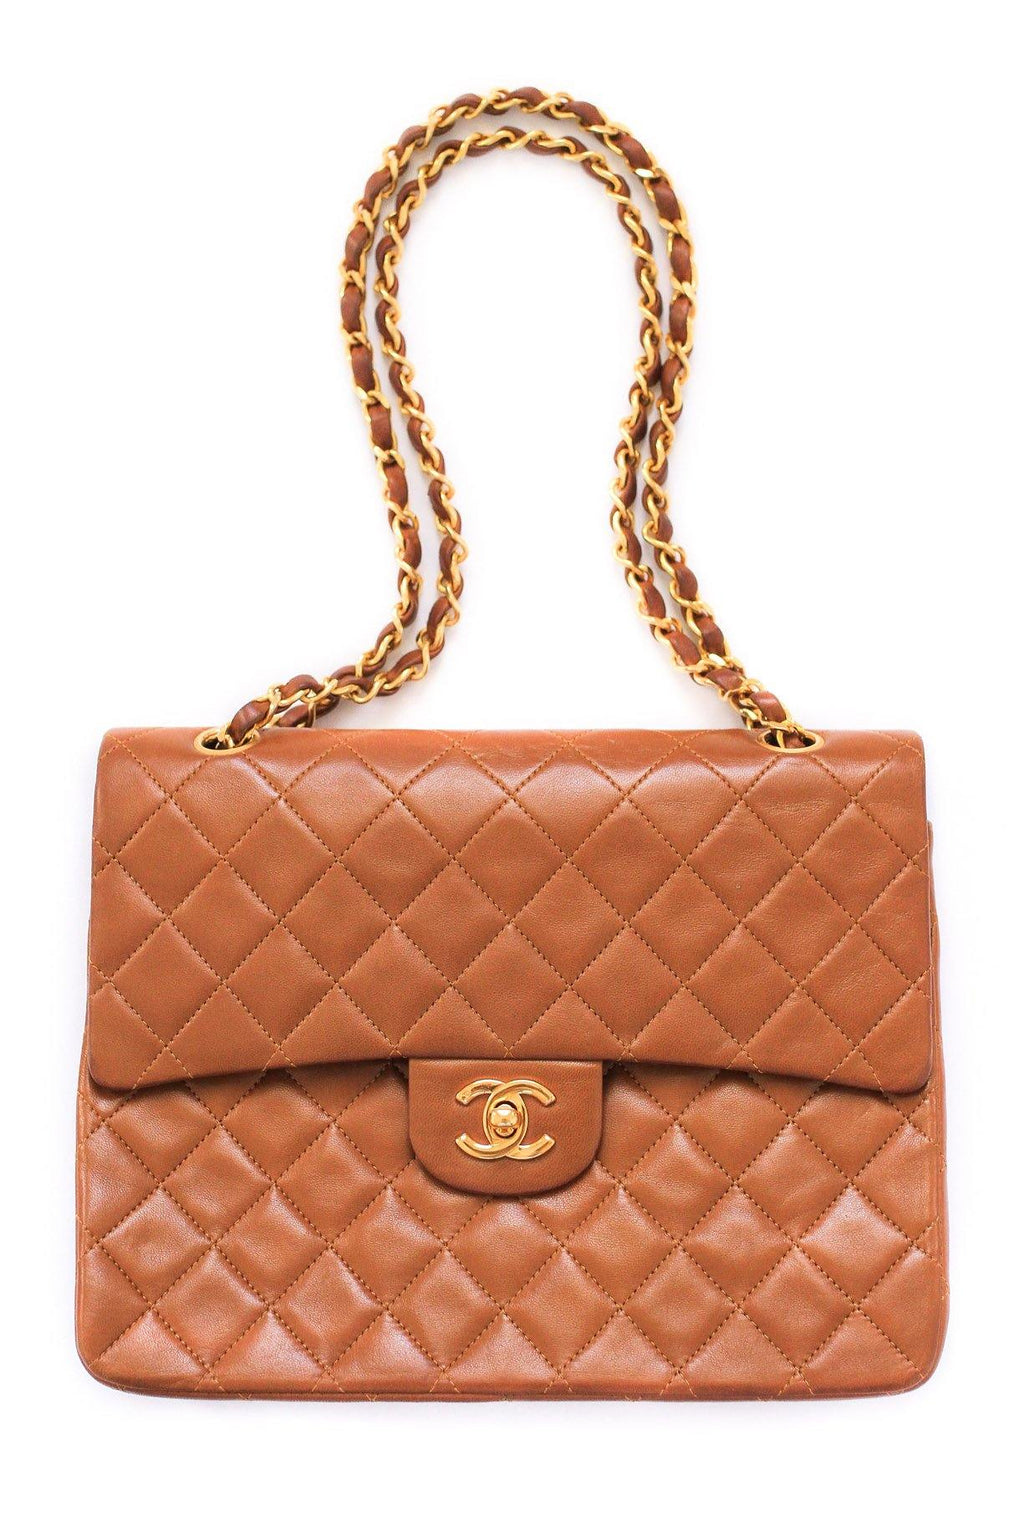 Chanel Brown Quilted Double Flap Bag